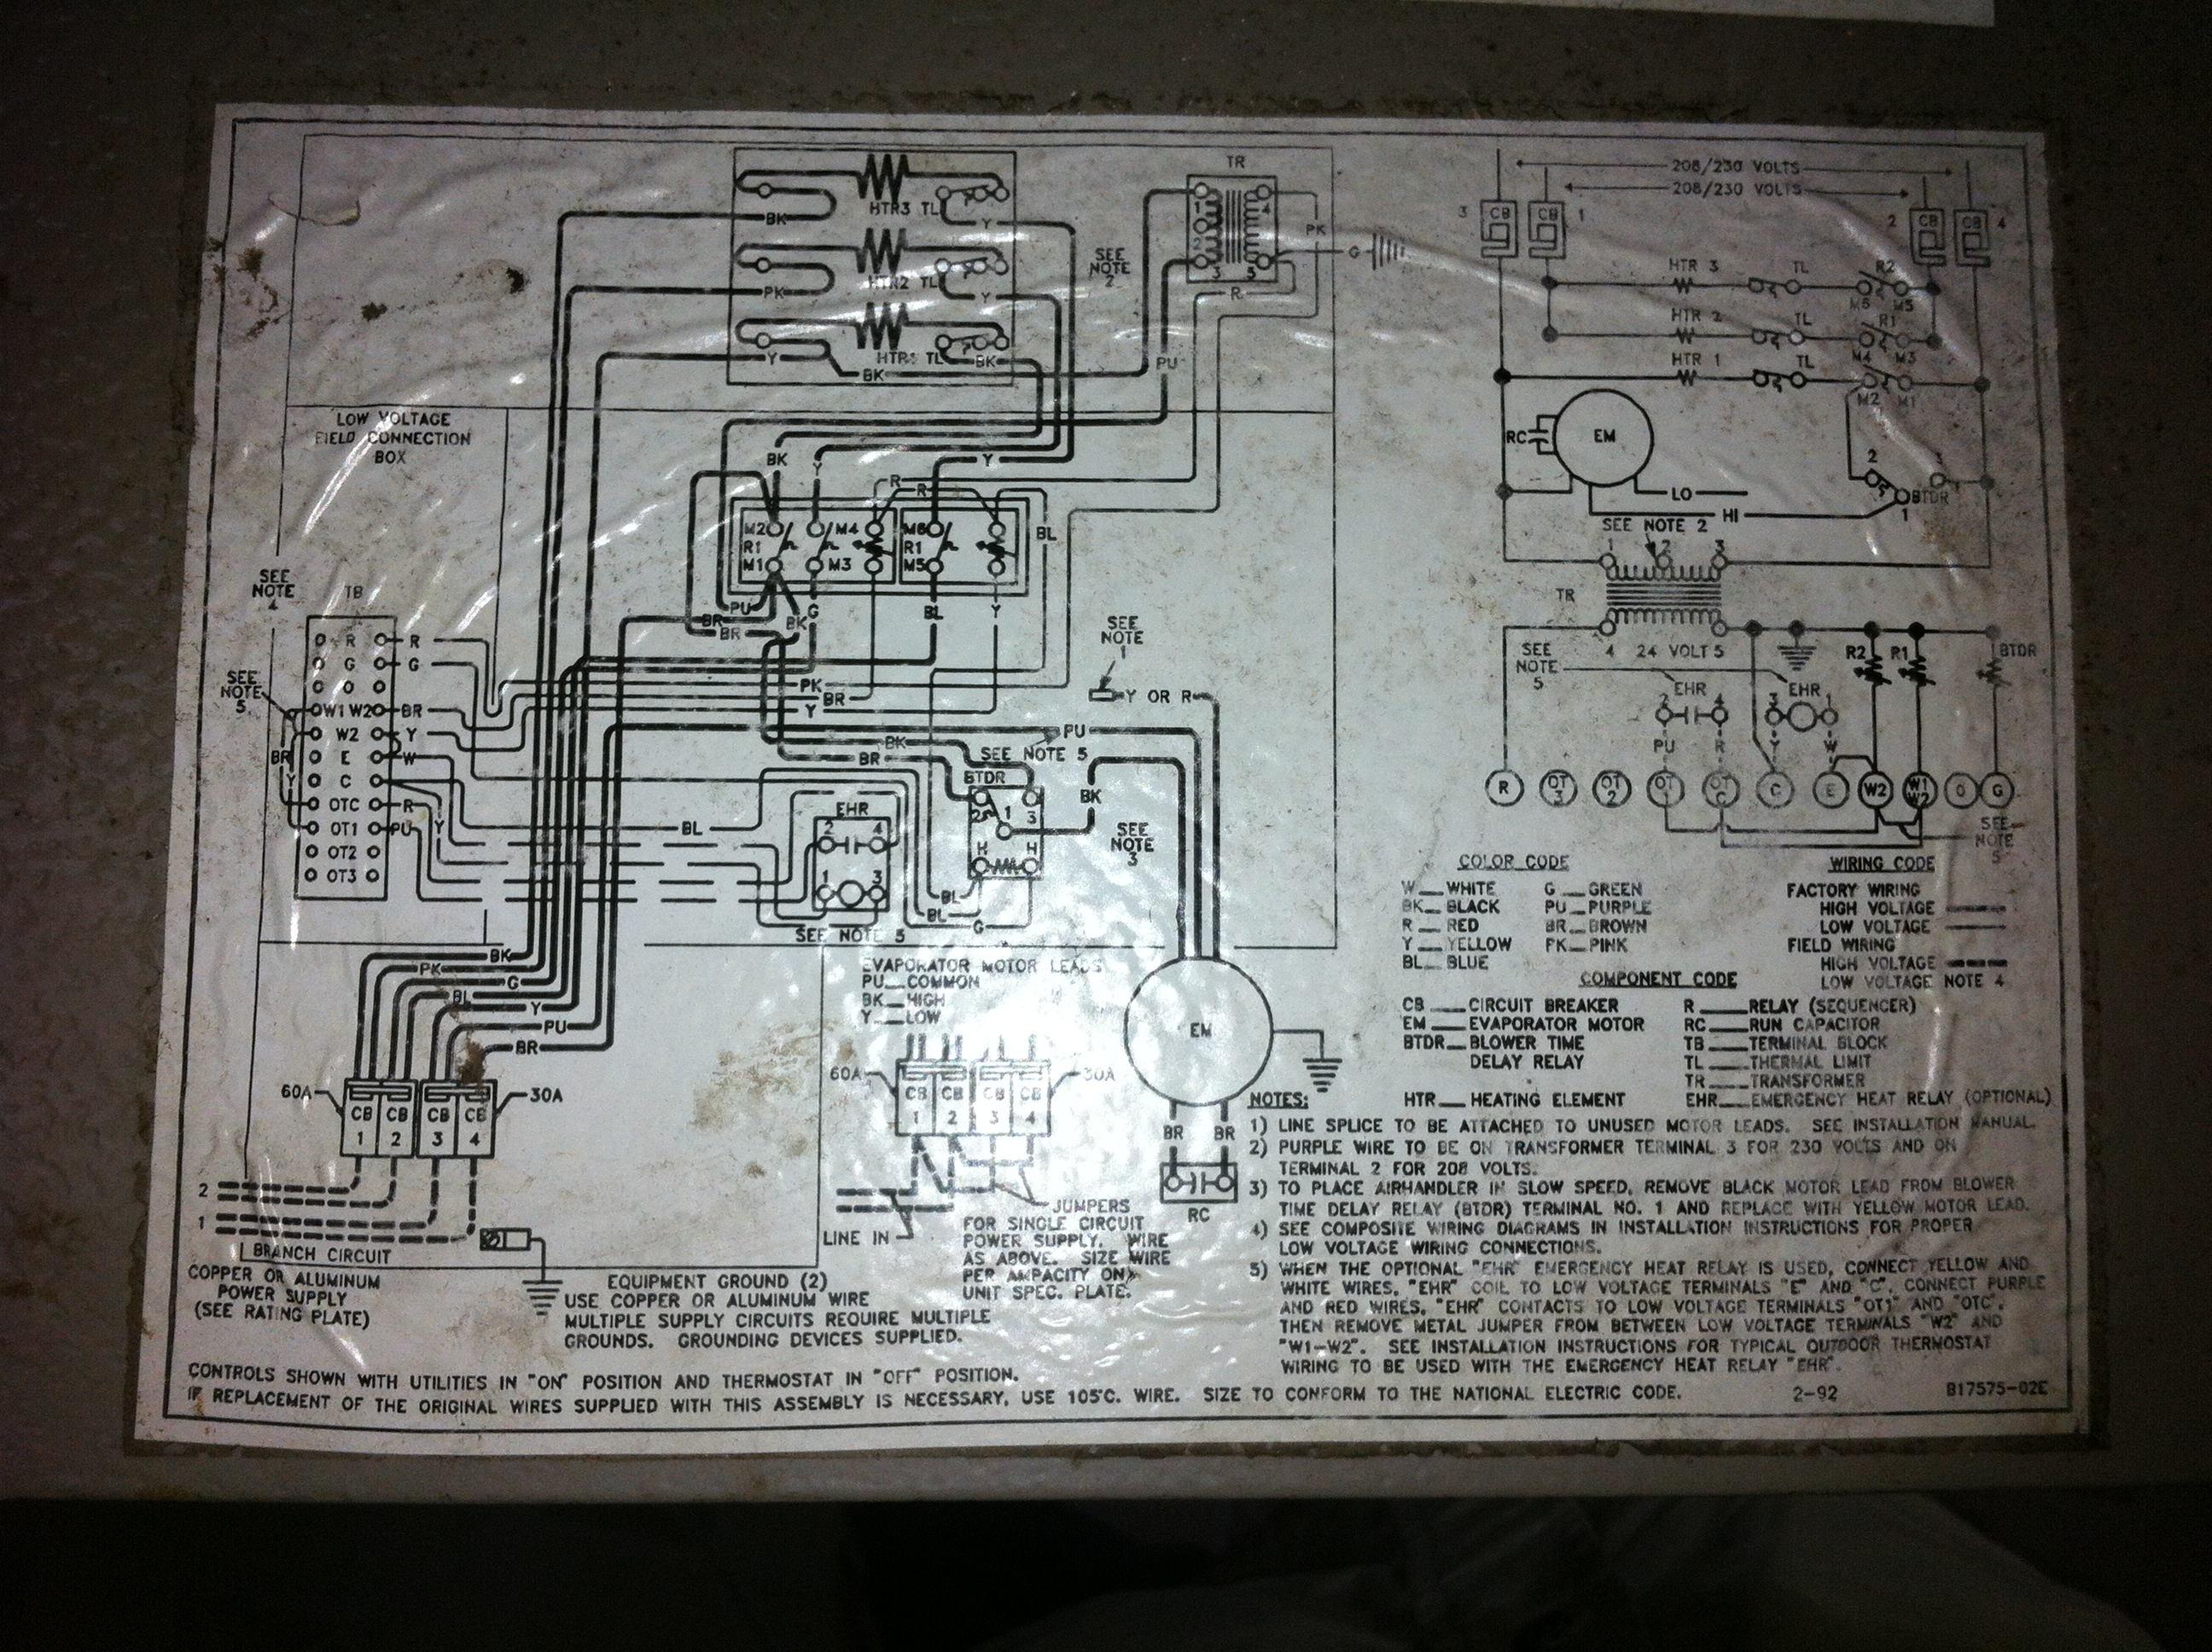 General Electric Furnace Wiring Diagram 39 Images Thermostat 2012 04 15 010529 Img 0035 100 Rheem Hvac Pagepackage